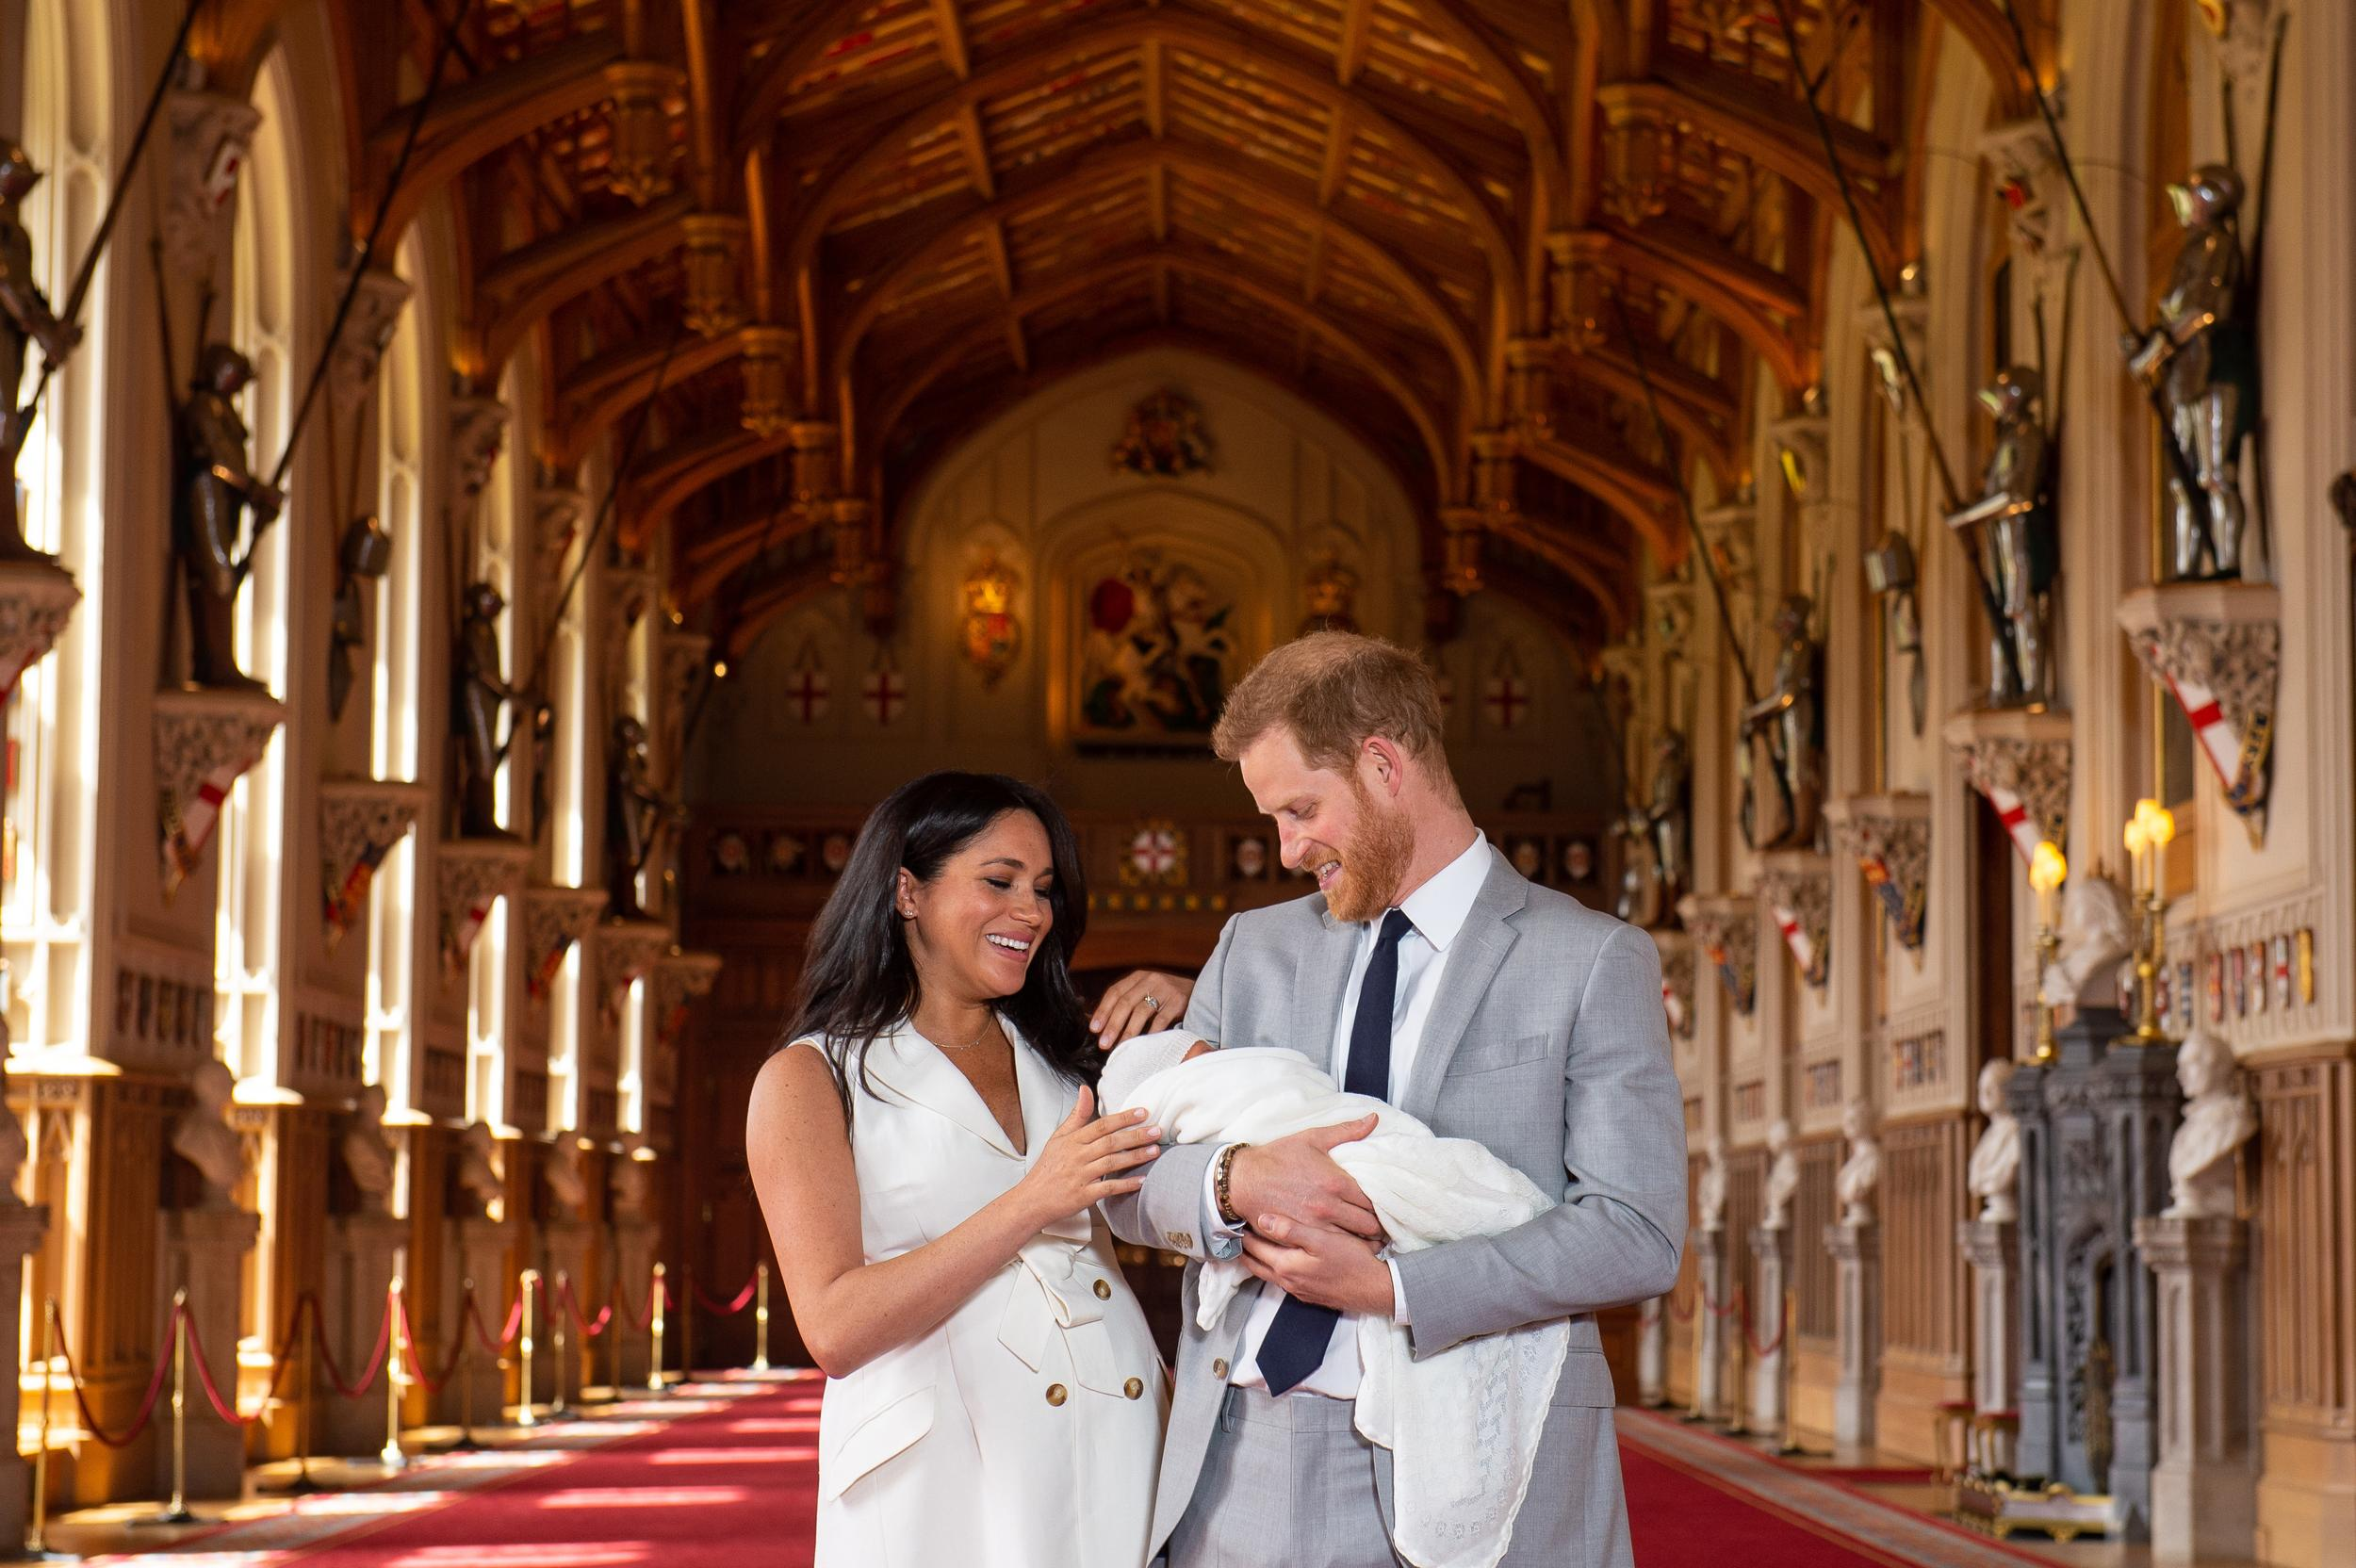 EMBARGOED to 1240 WEDNESDAY MAY 08 2019. The Duke and Duchess of Sussex with their baby son, who was born on Monday morning, during a photocall in St George's Hall at Windsor Castle in Berkshire.